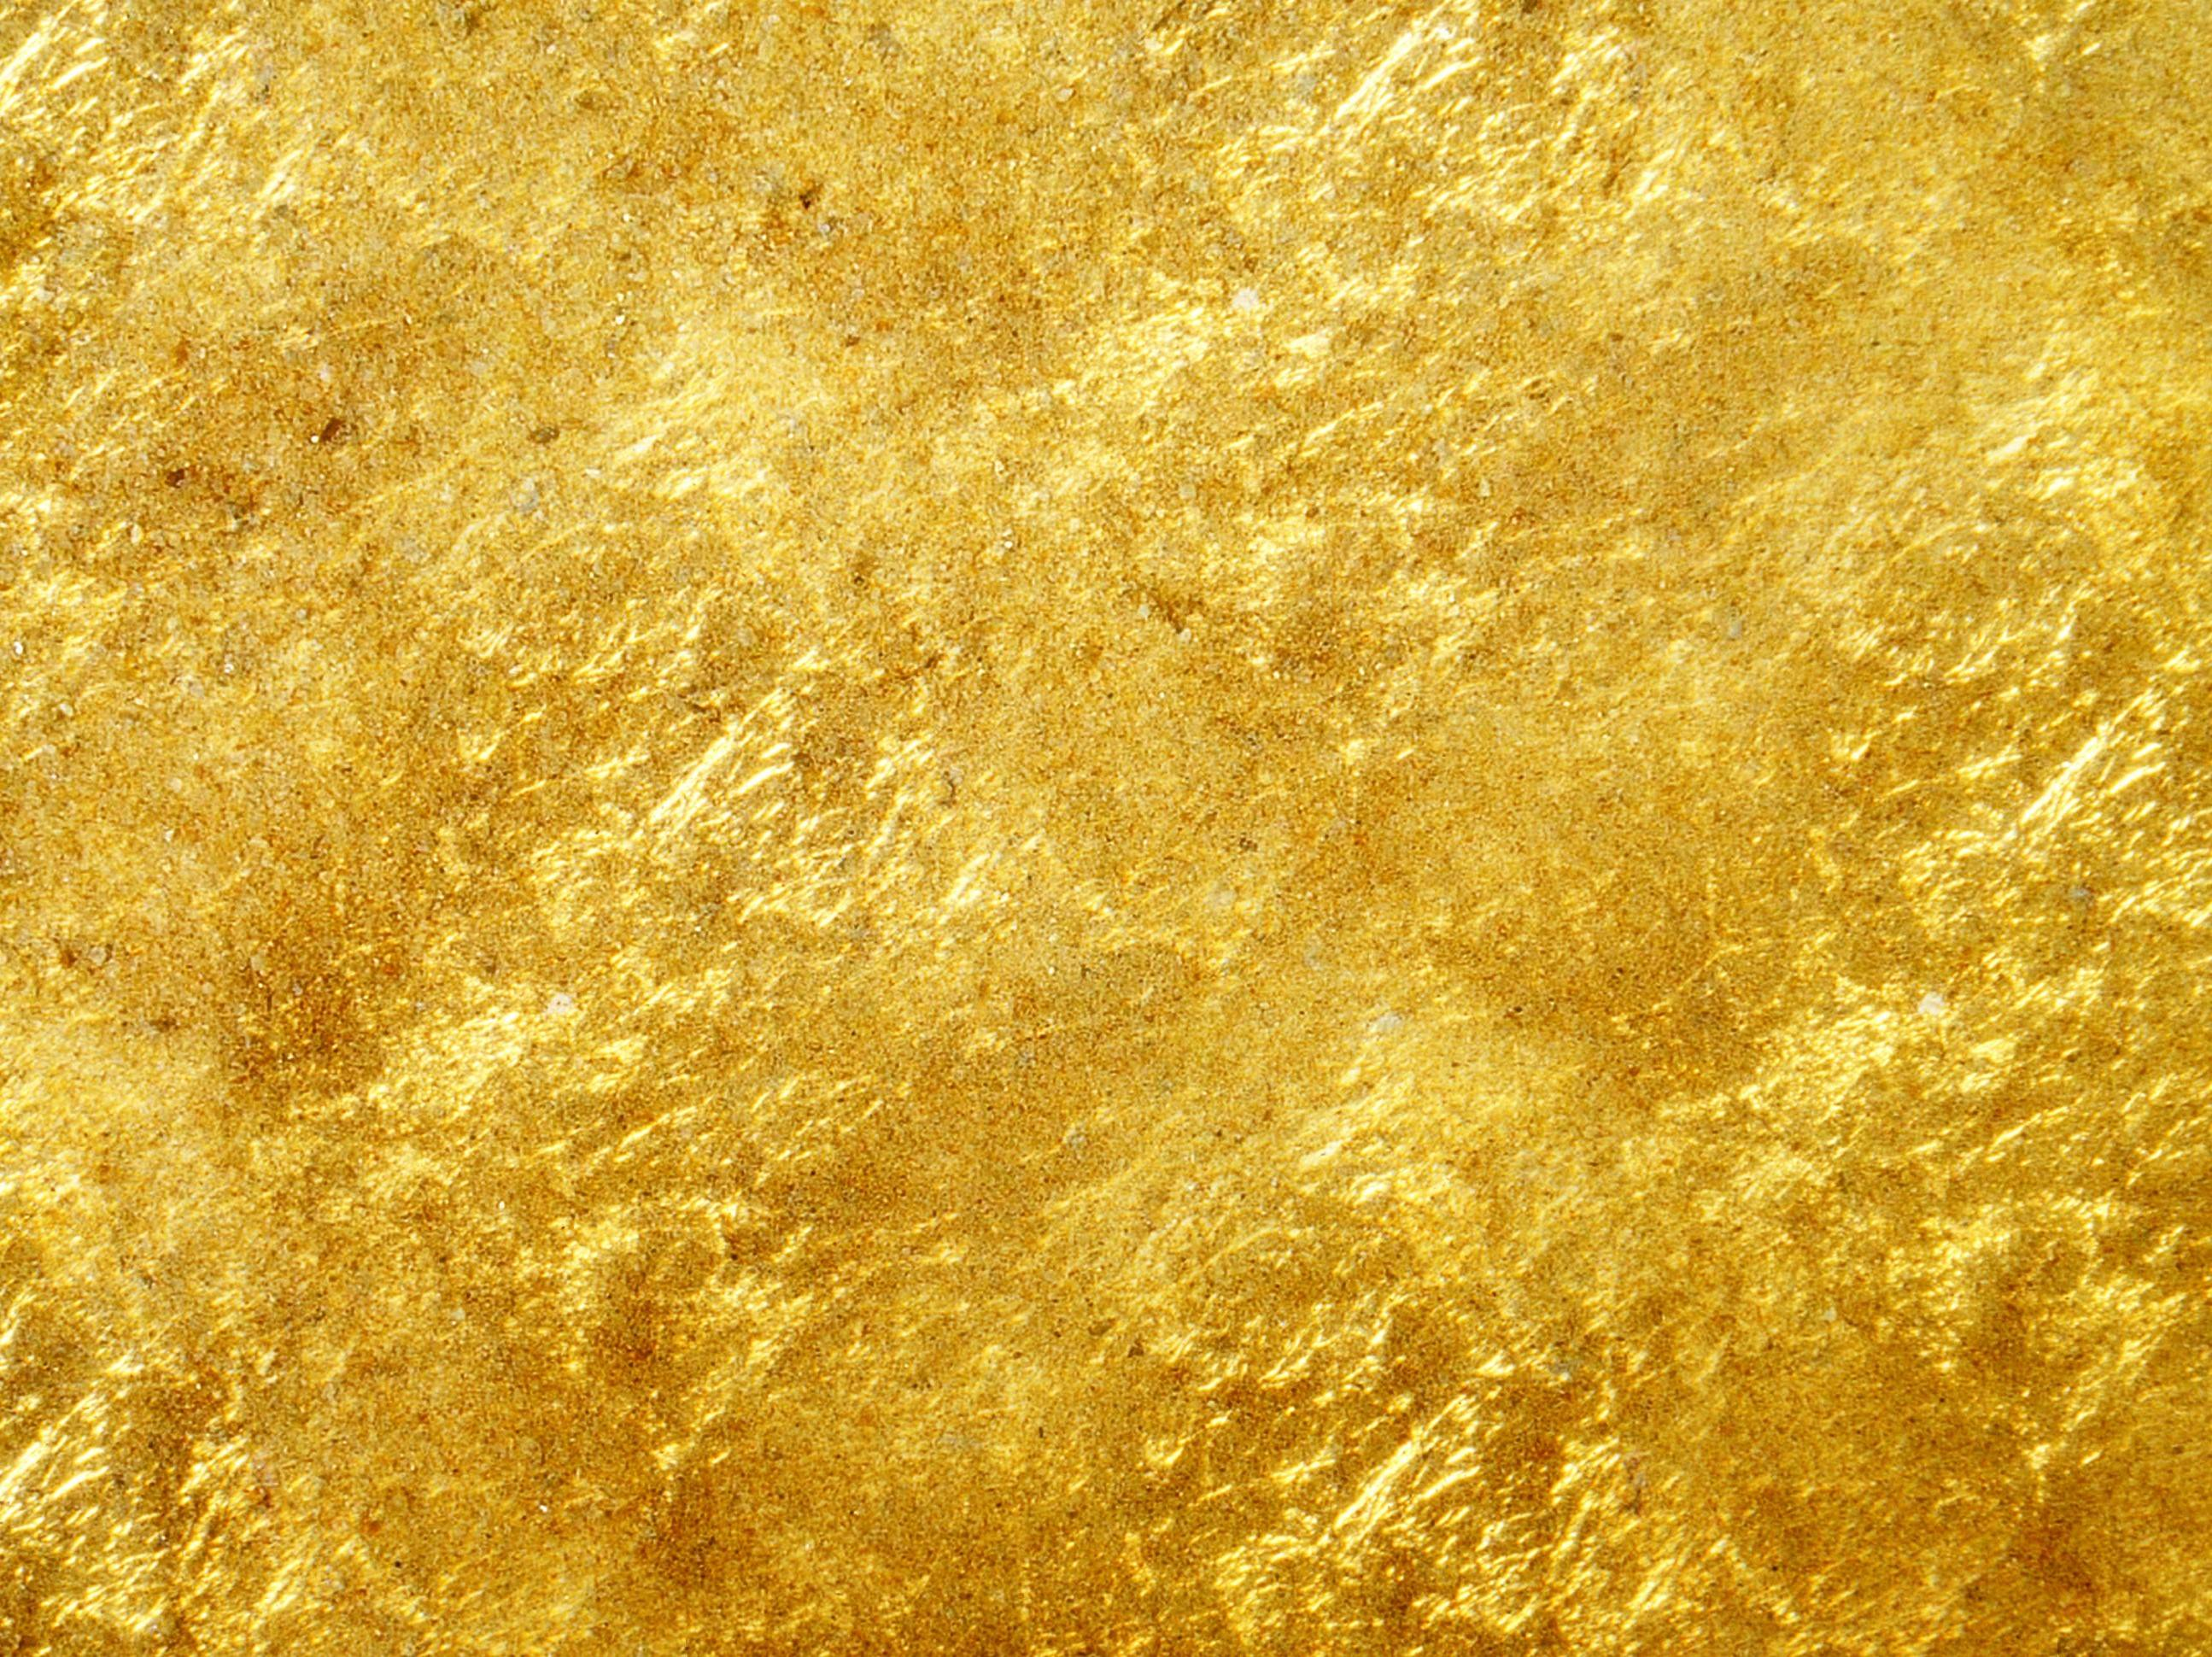 gold foil texture background pictures